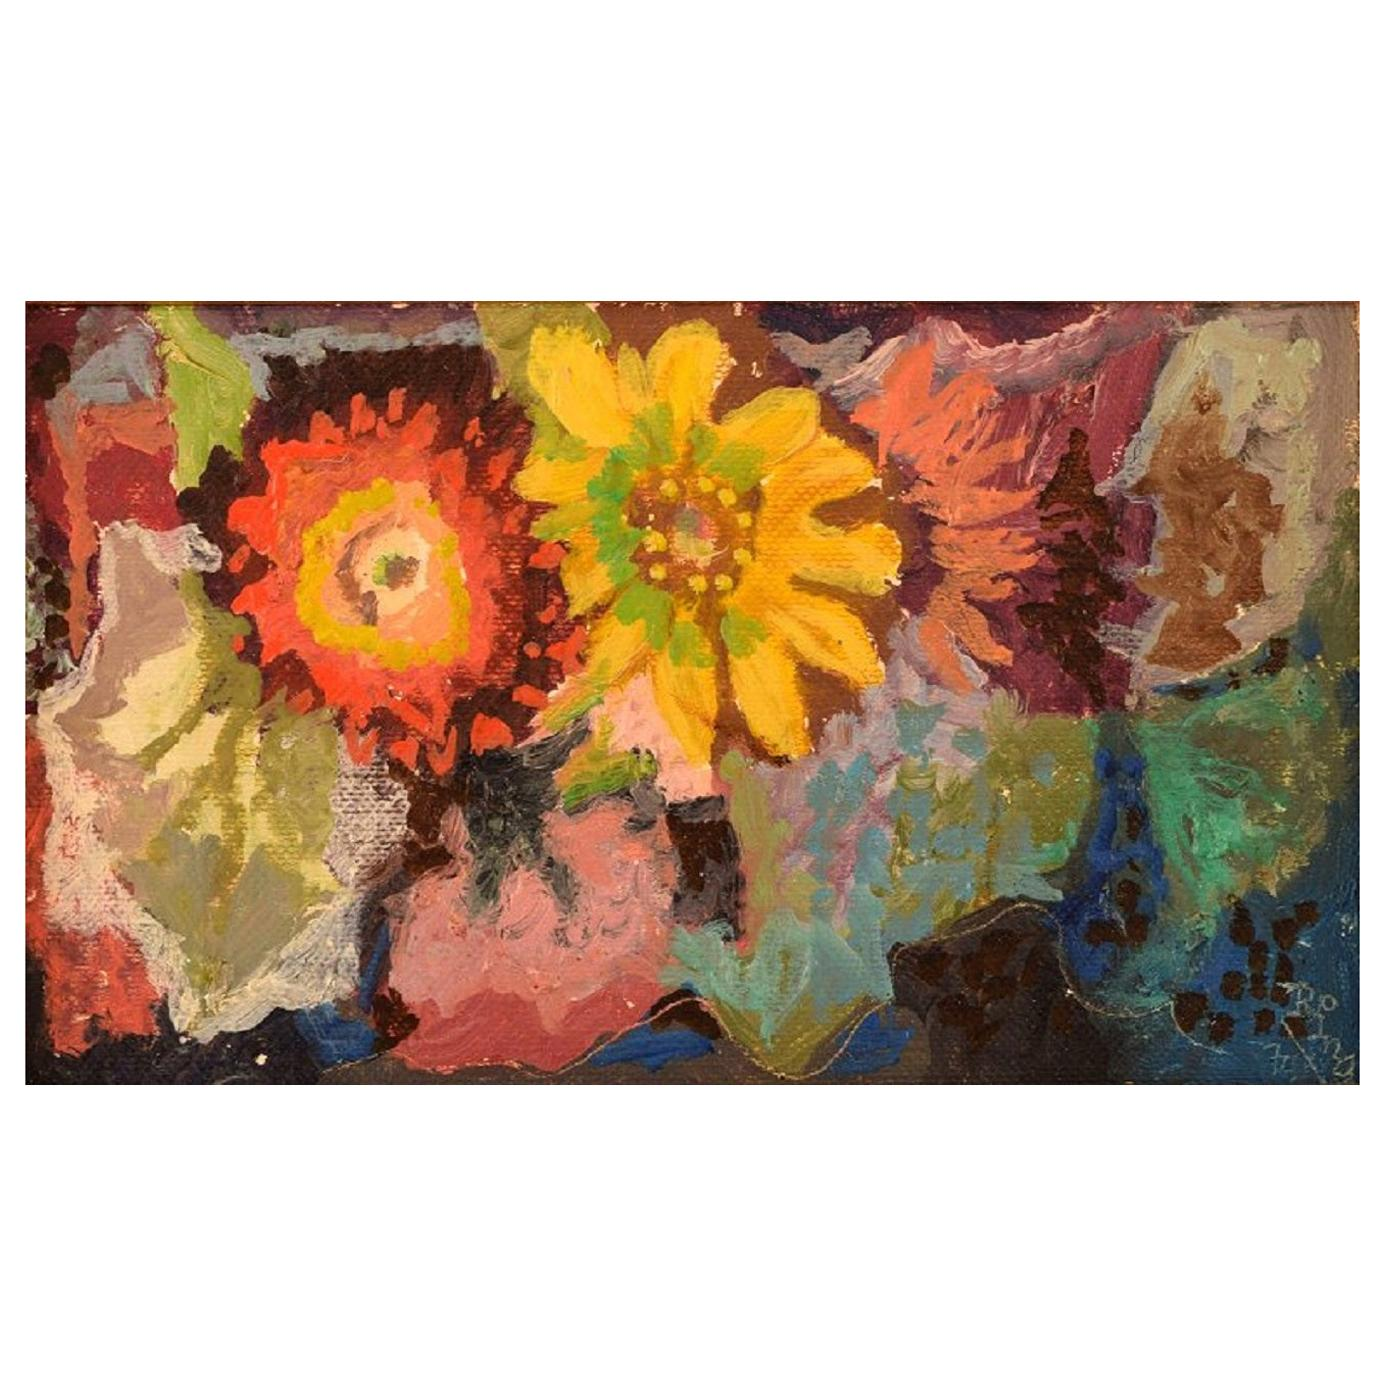 Ragnar Ring, Swedish Painter, Oil on Board, Arrangement with Flowers, Dated 1970